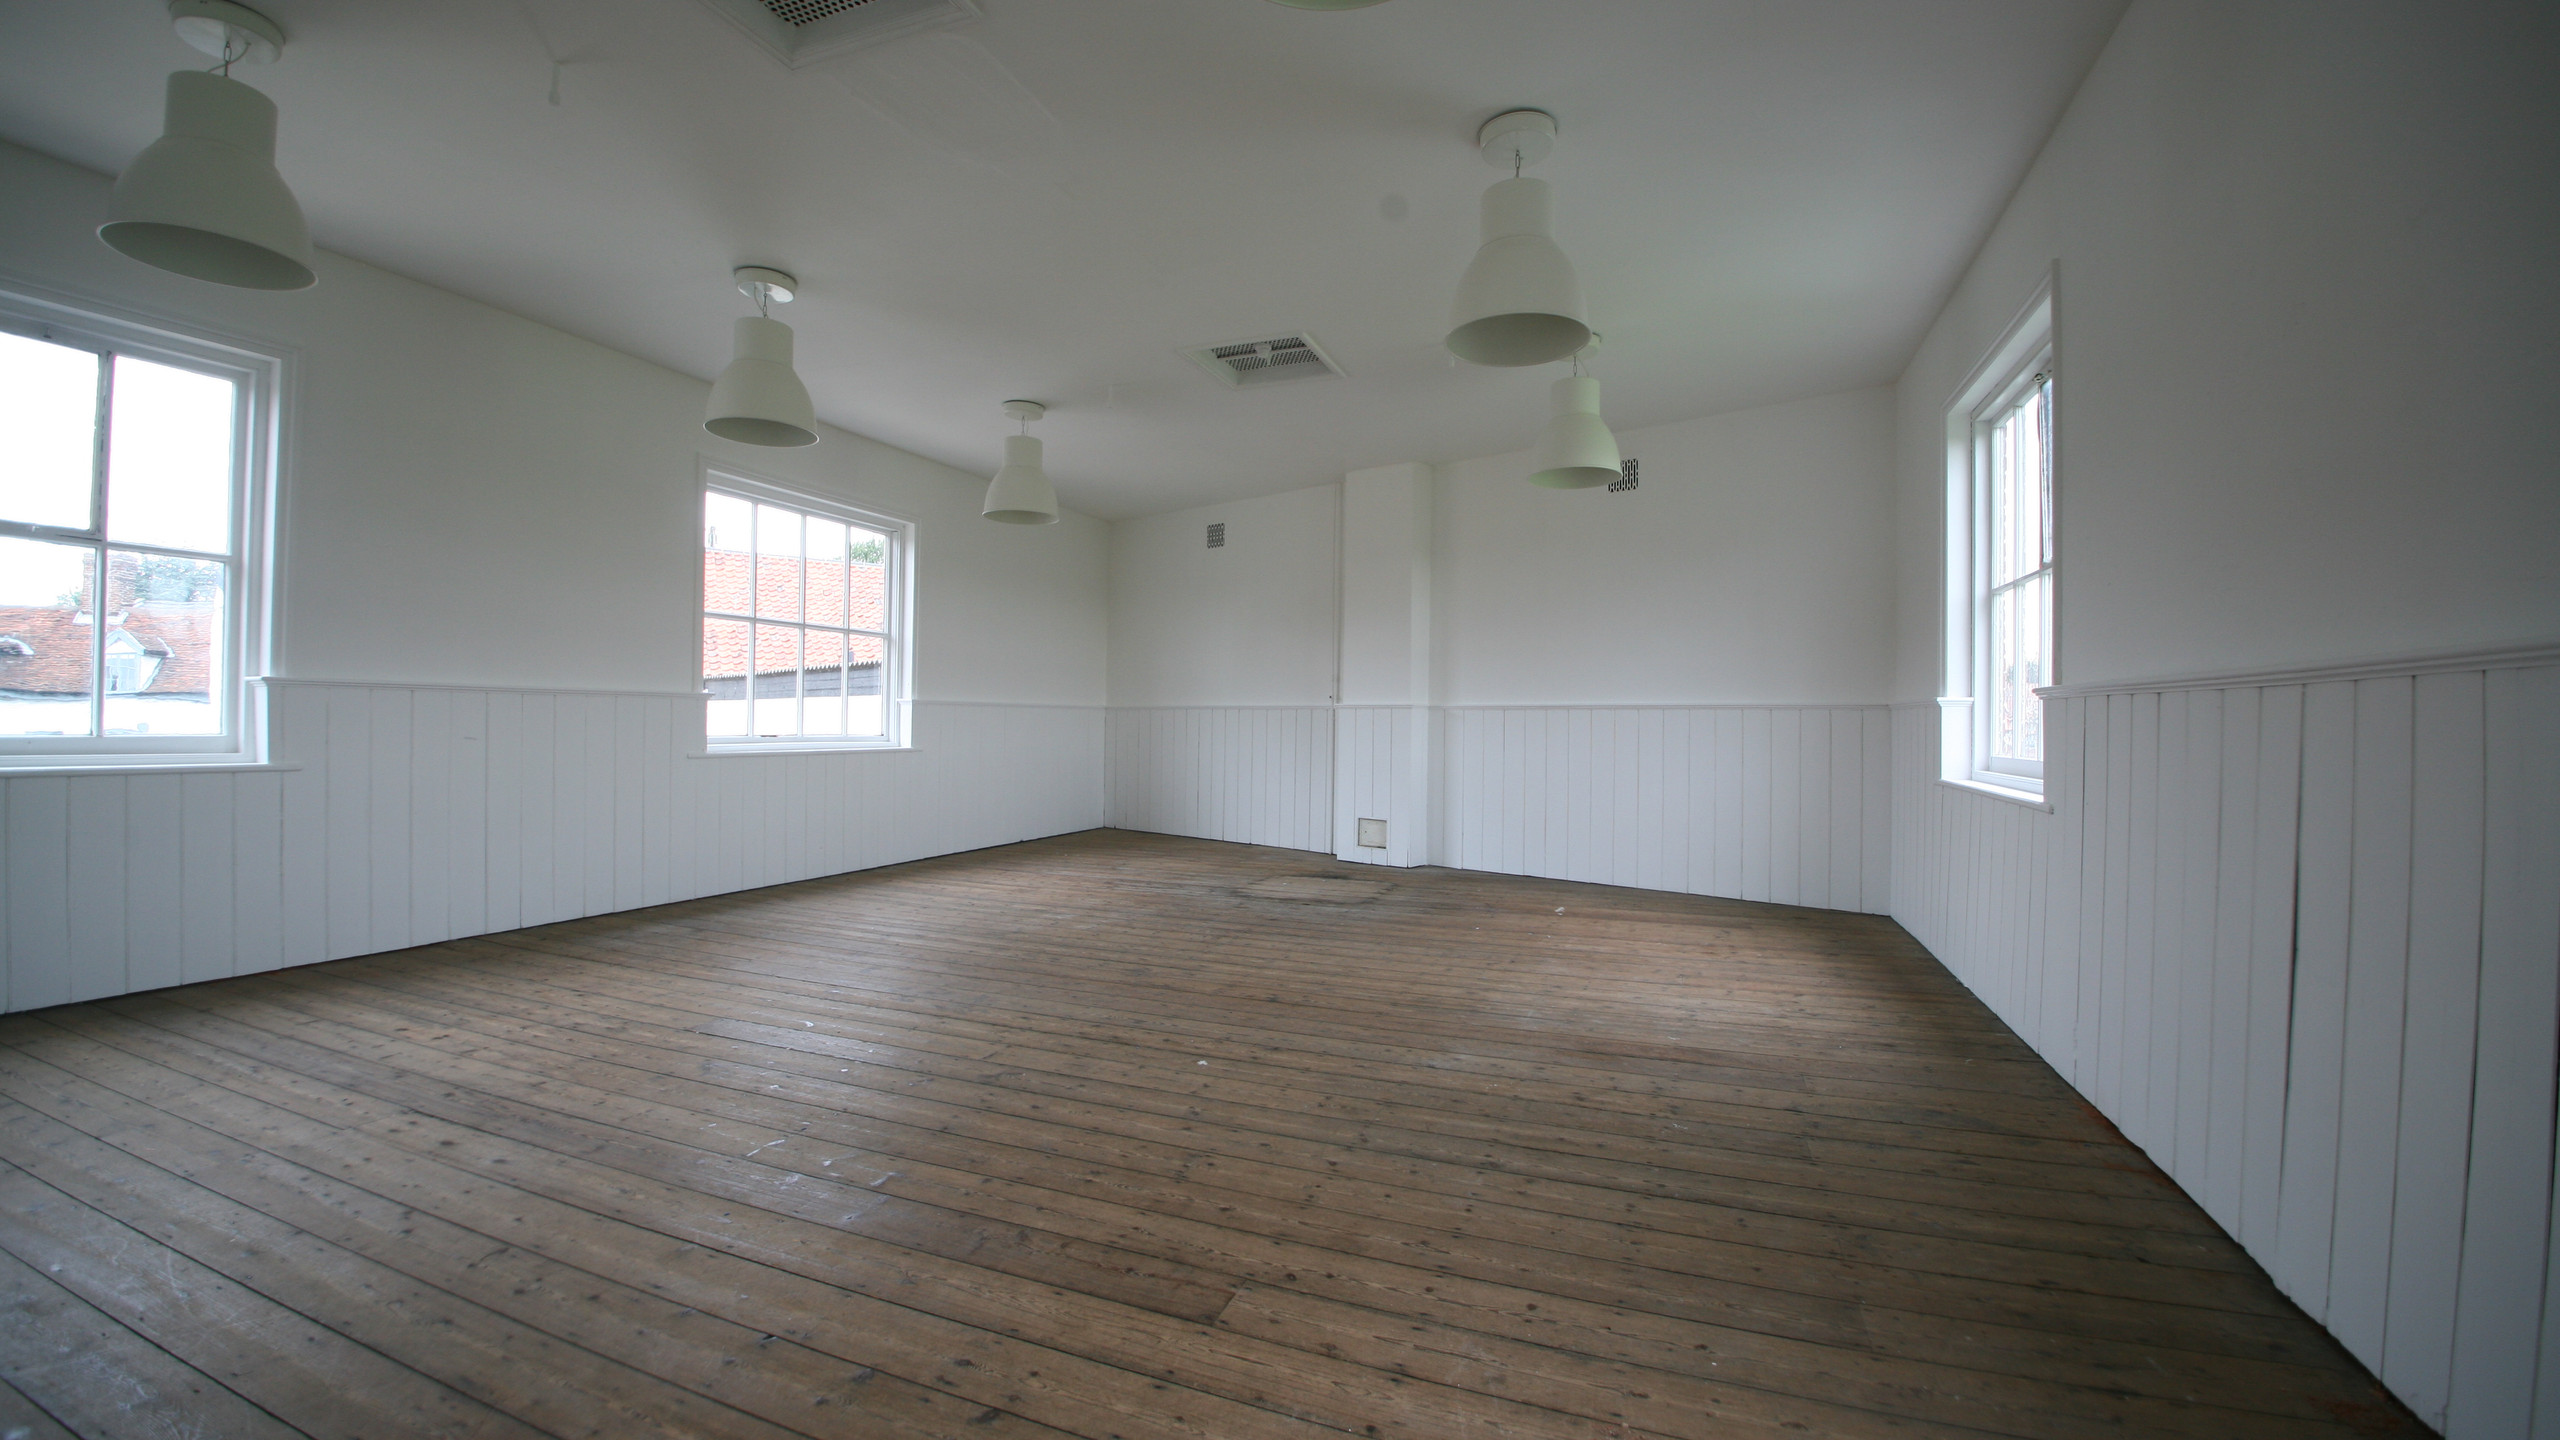 Large open space on the first floor